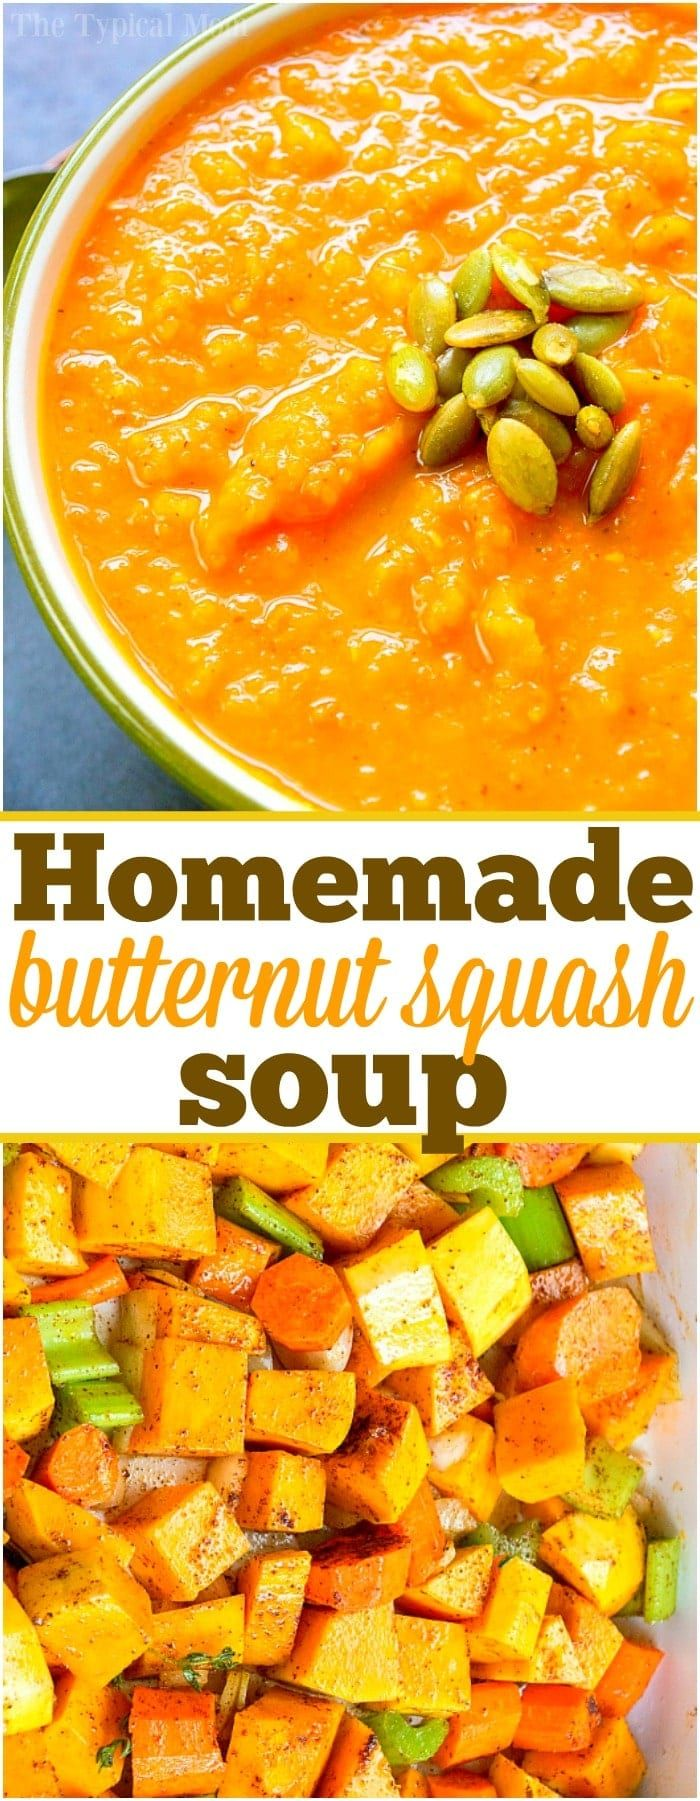 Homemade Butternut Squash Soup · The Typical Mom